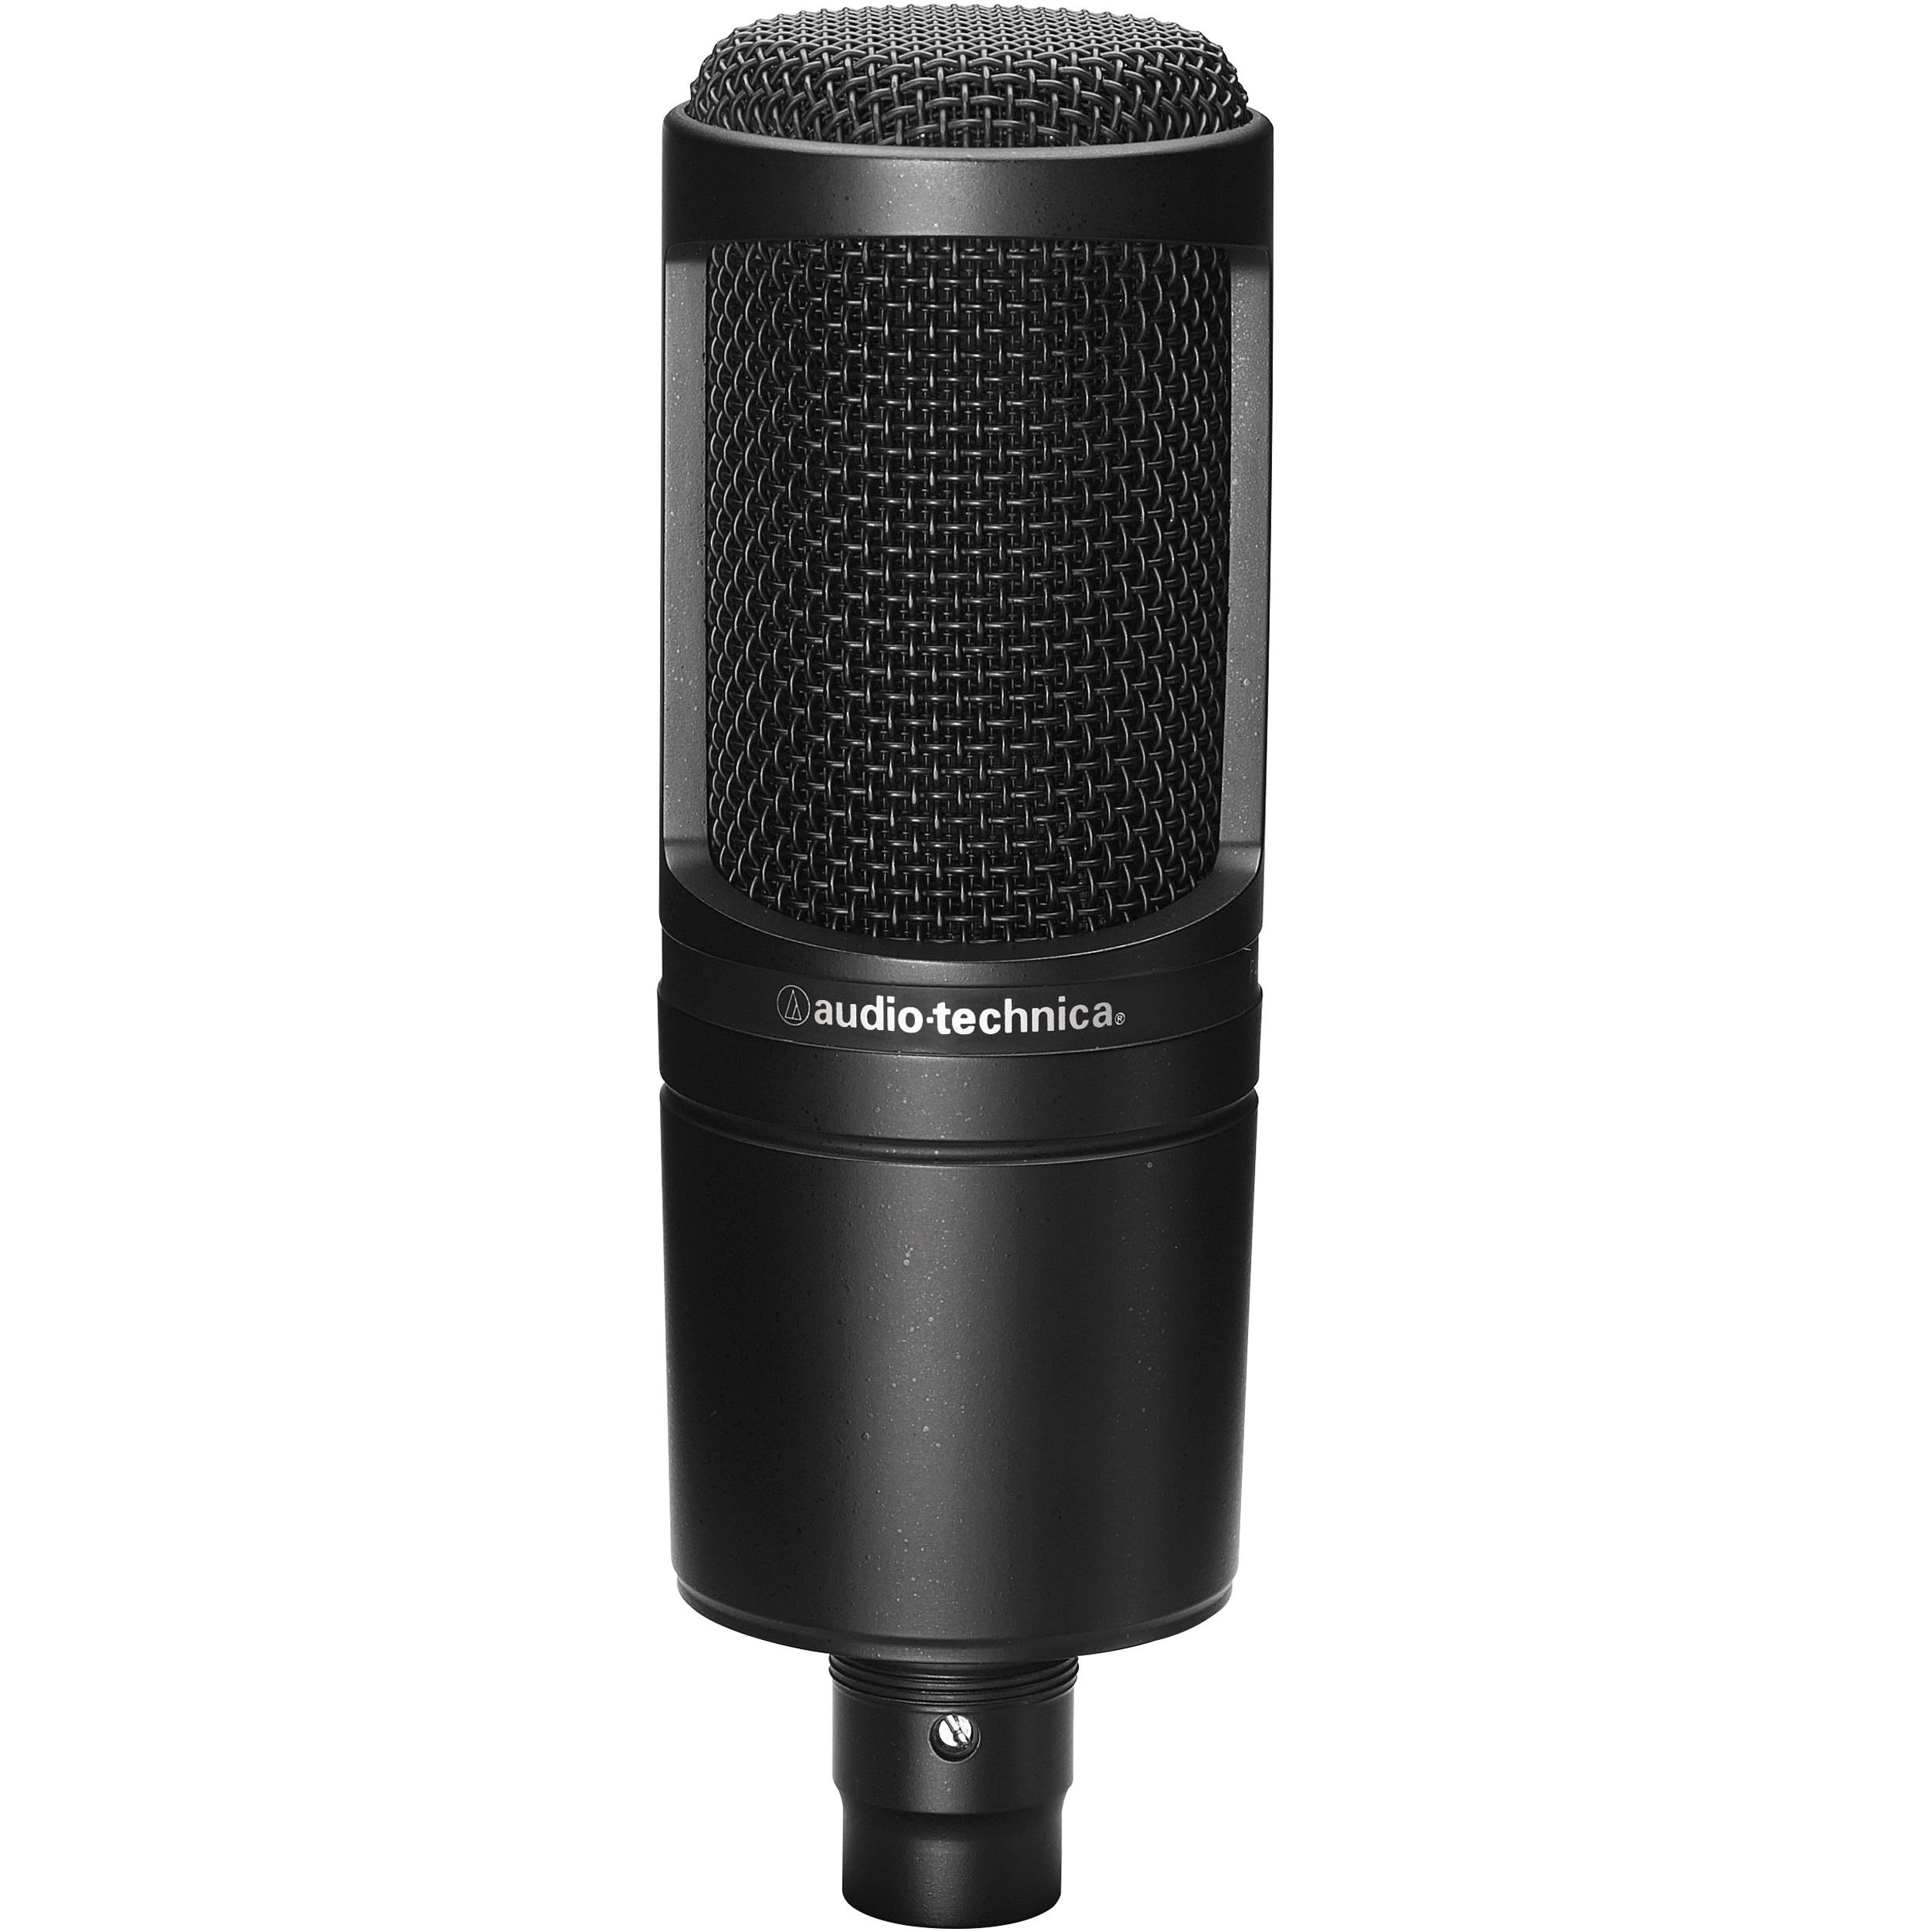 Audio-Technica AT2020 Cardioid Condenser Microphone AT2020 B&H